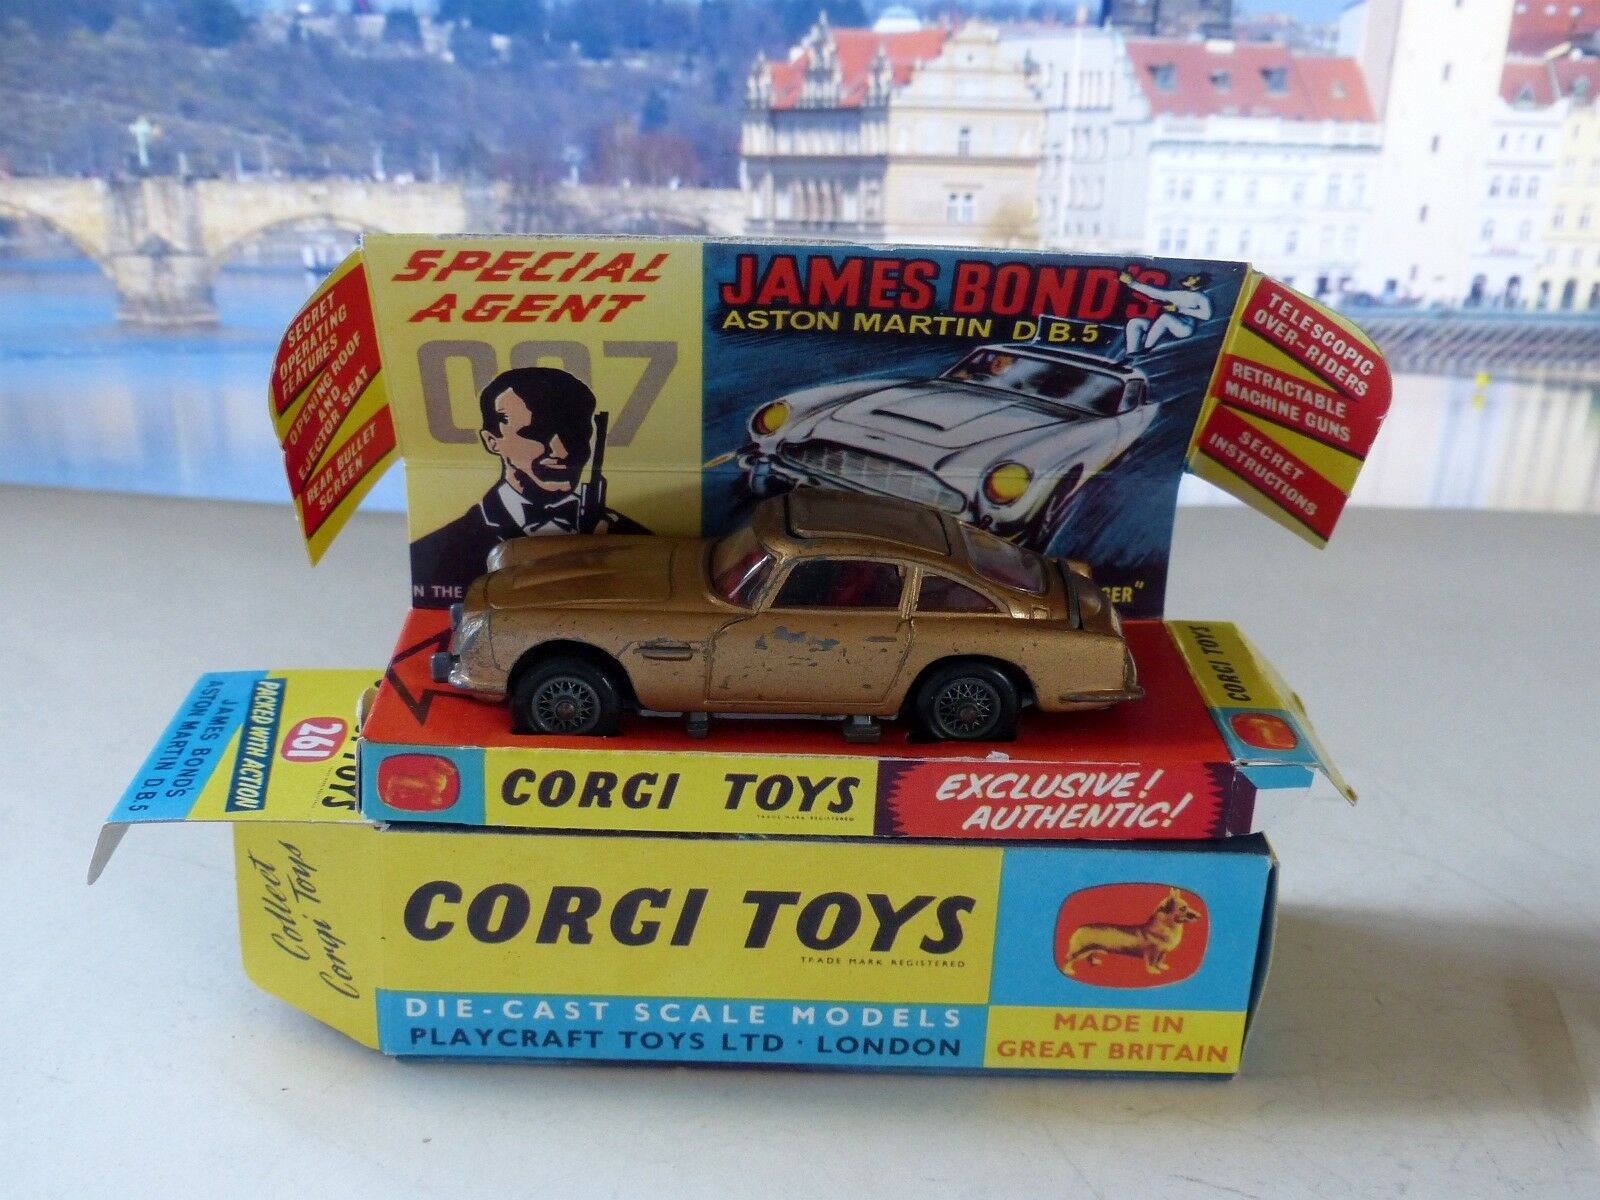 Corgi Toys 261 James Bond Aston Martin with good reproduction box